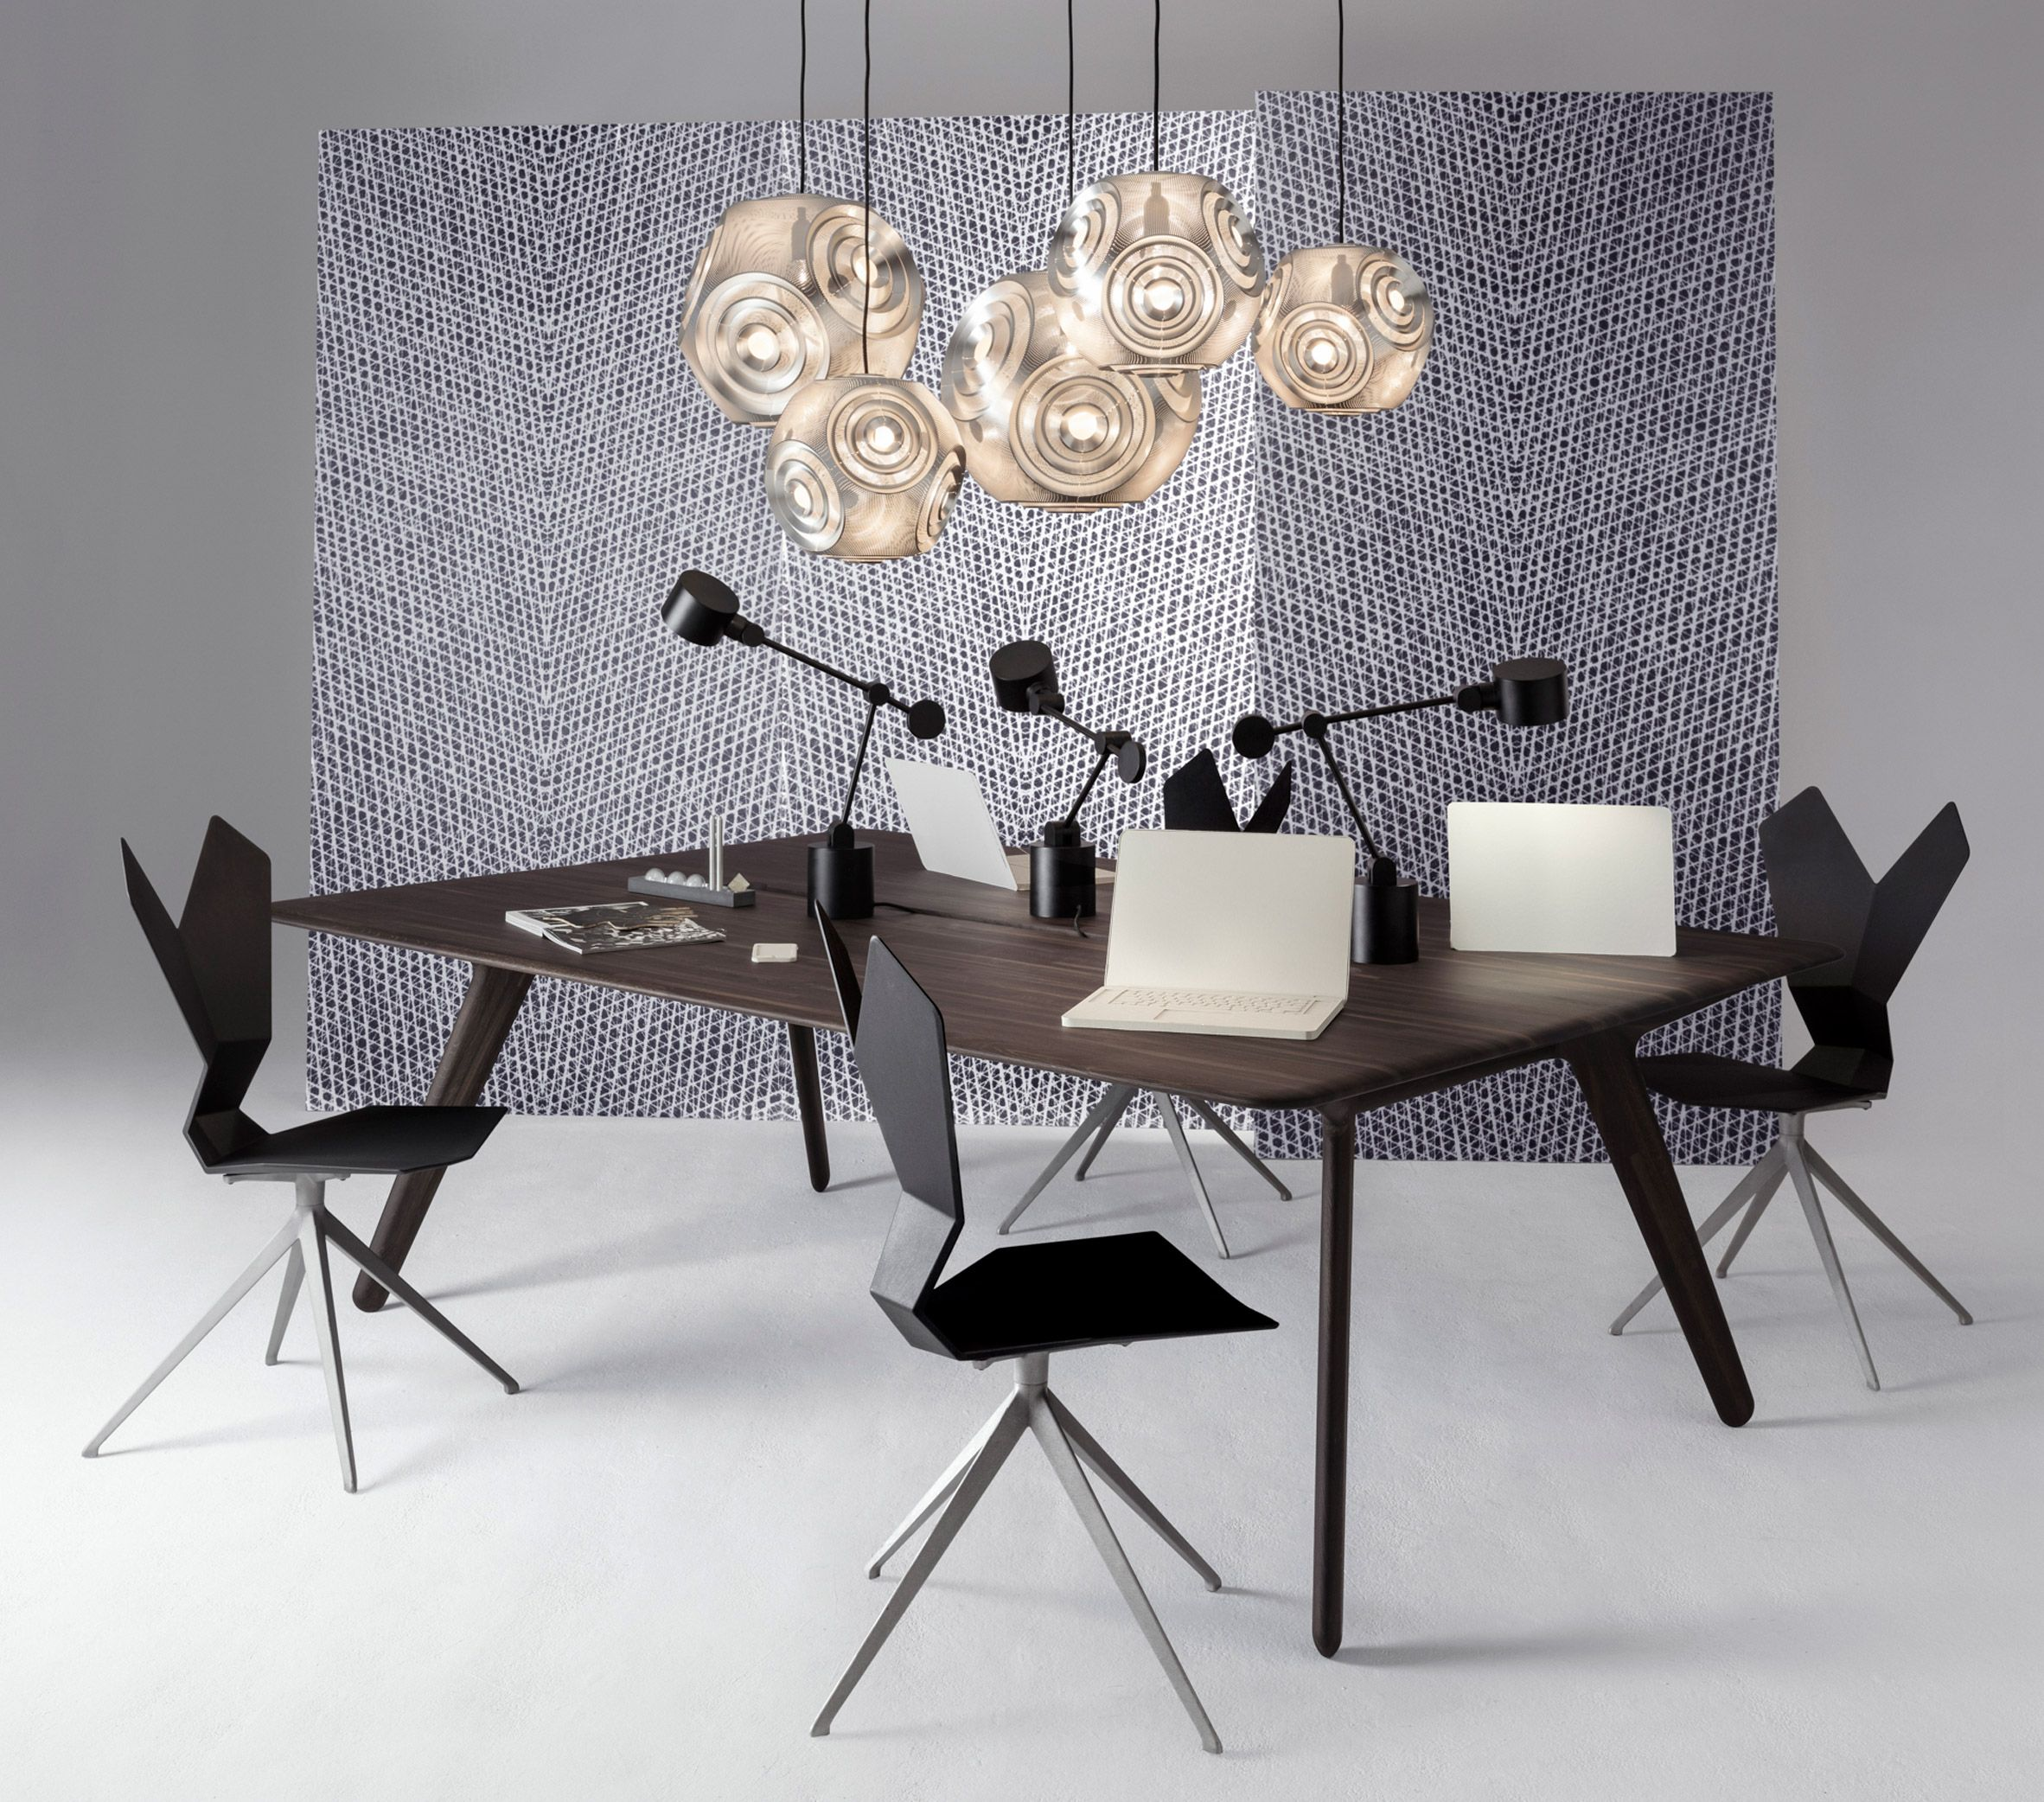 Tom Dixon Rifts On Earlier Designs Here A Table And Chairs From  # Muebles Zientte